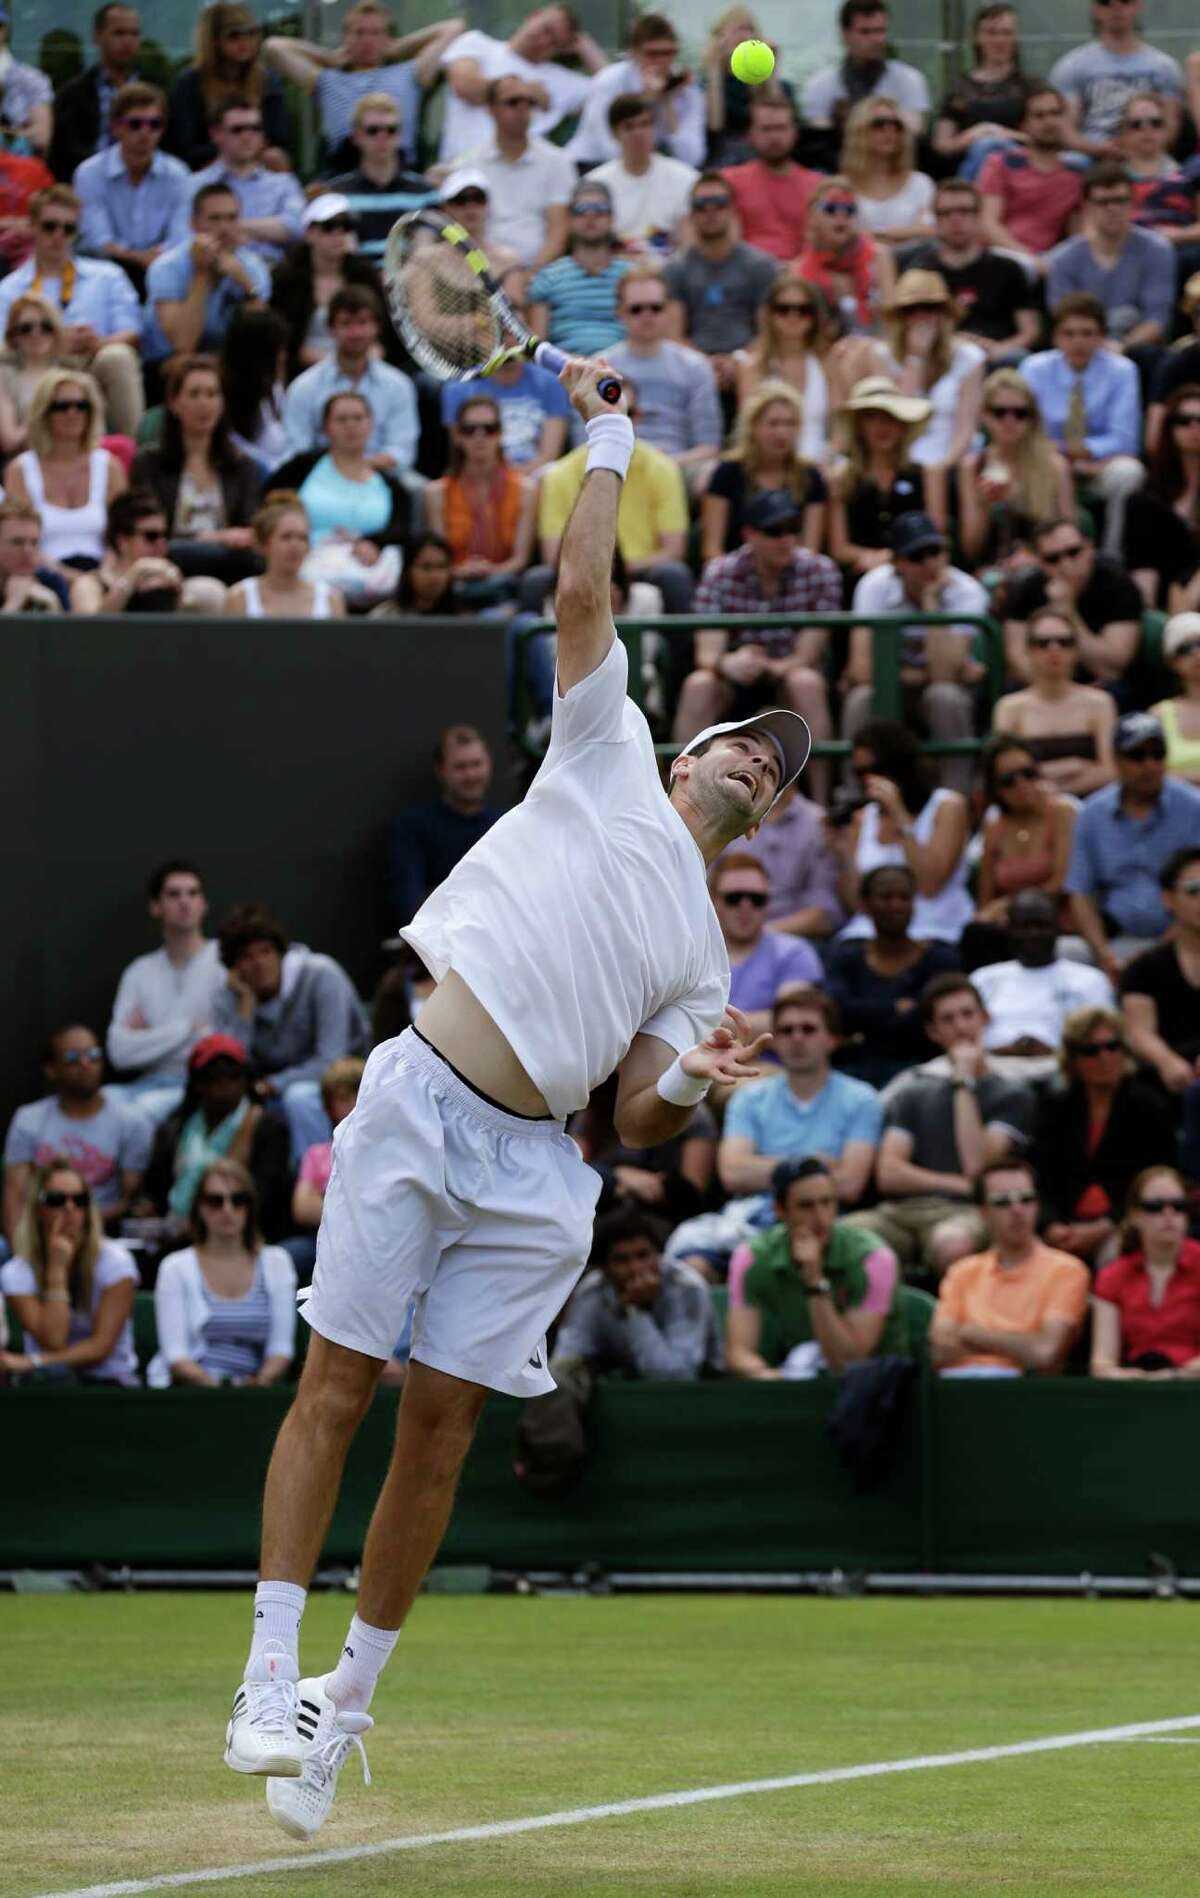 Brian Baker of the United States serves to Benoit Pare of France during a third round men's singles match at the All England Lawn Tennis Championships at Wimbledon, England, Saturday, June 30, 2012.